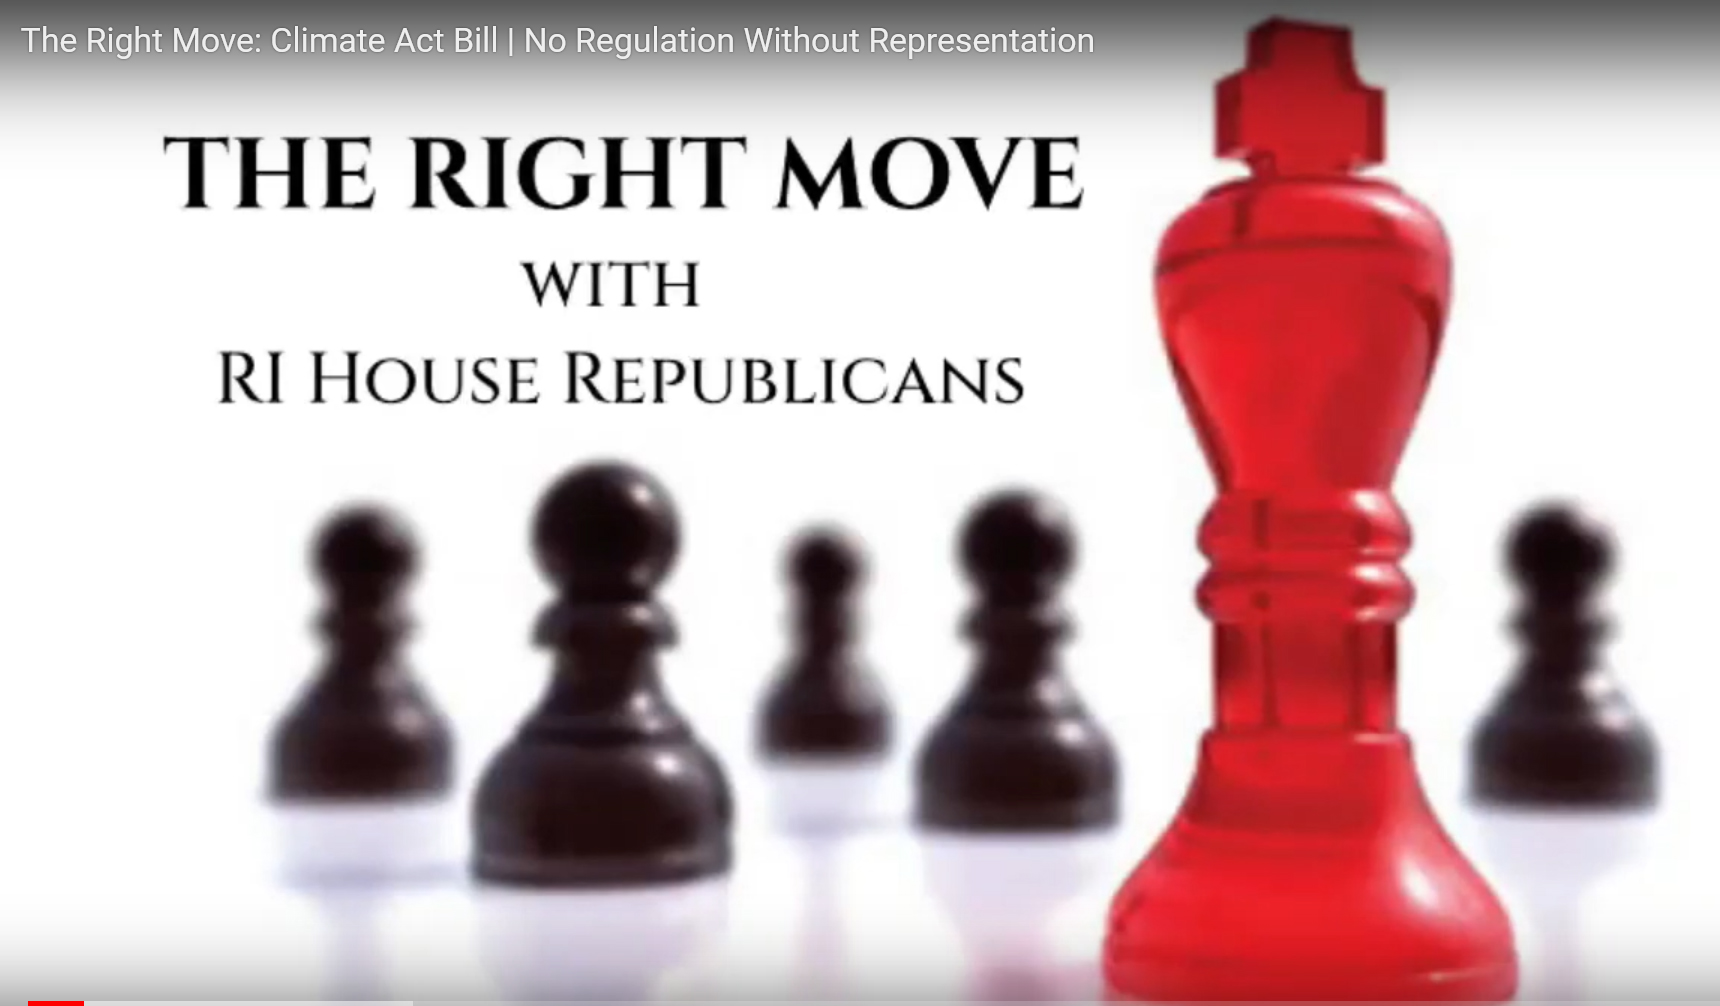 The Right Move: Climate Act Bill –  RhodeMapRI on Steroids, Un-Elected Bureaucrats Forcing Their World View on YOUR LIFE